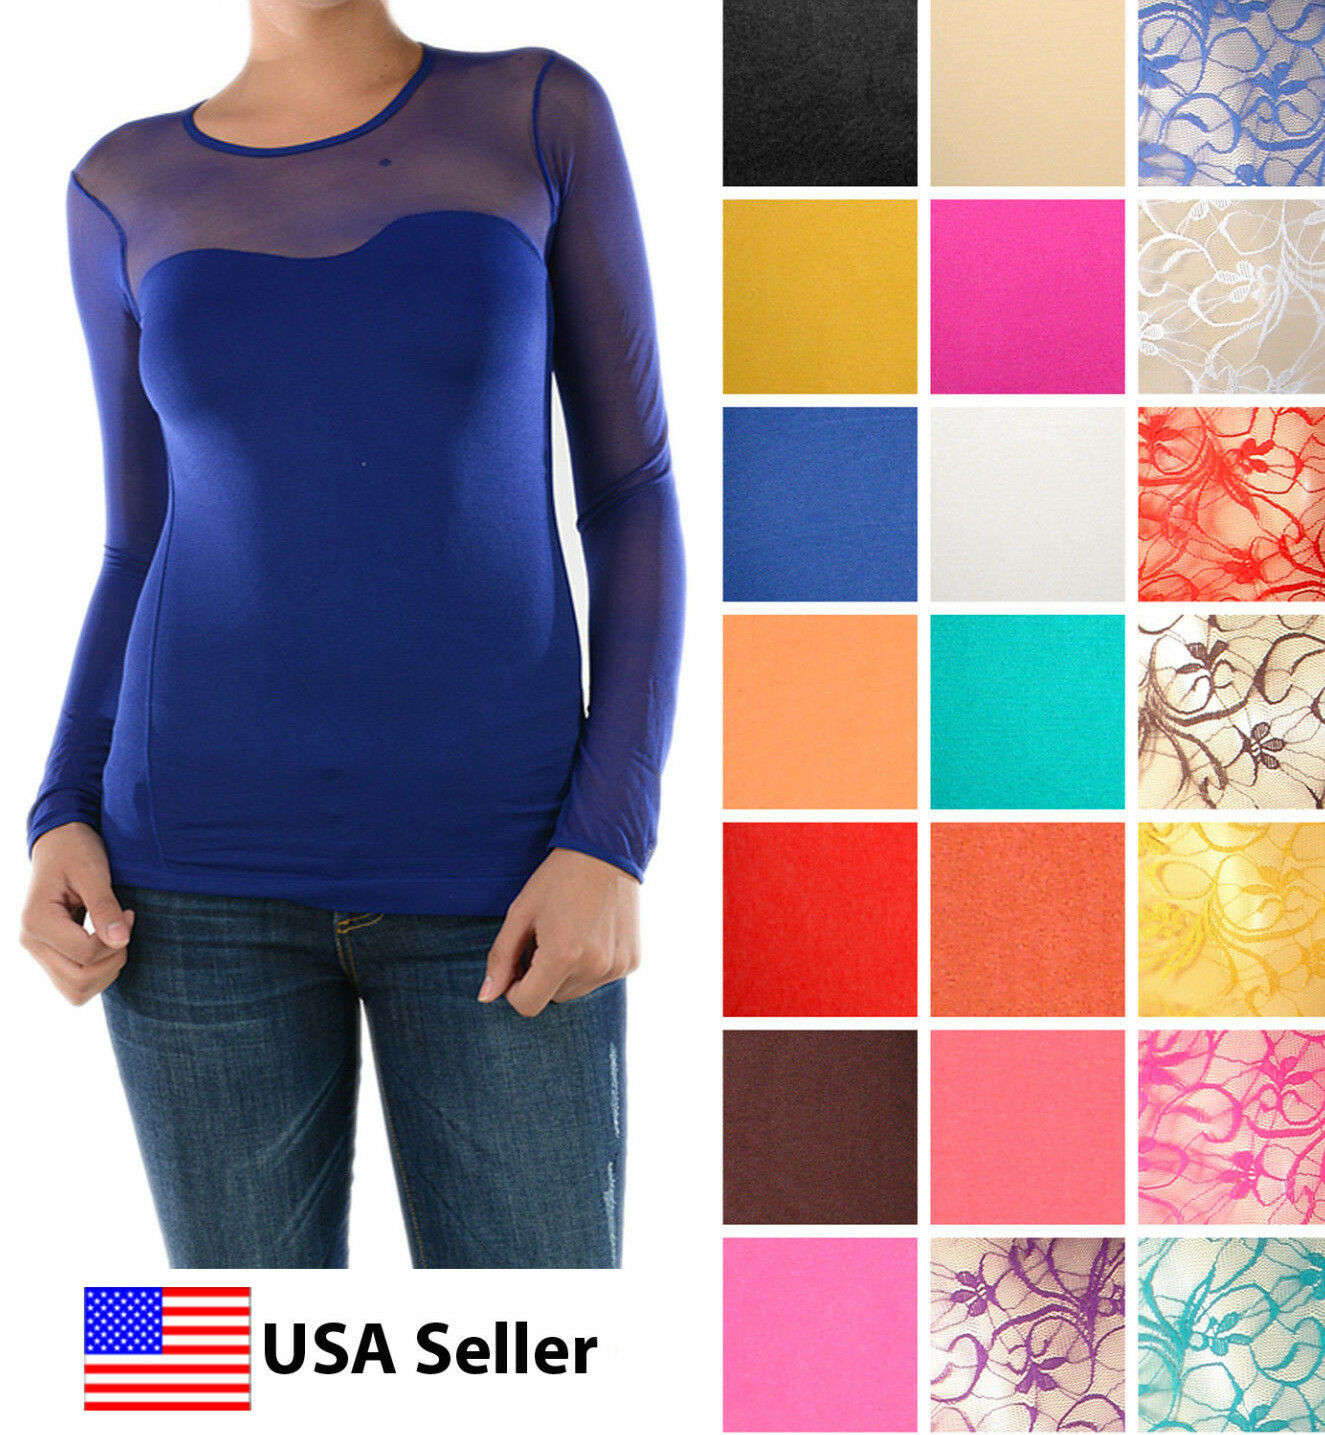 WOMEN SEXY SWEETHEART SEAMLESS SHEER LONG SLEEVE MESH NECKLINE BLOUSE TOP SHIRT Clothing, Shoes & Accessories